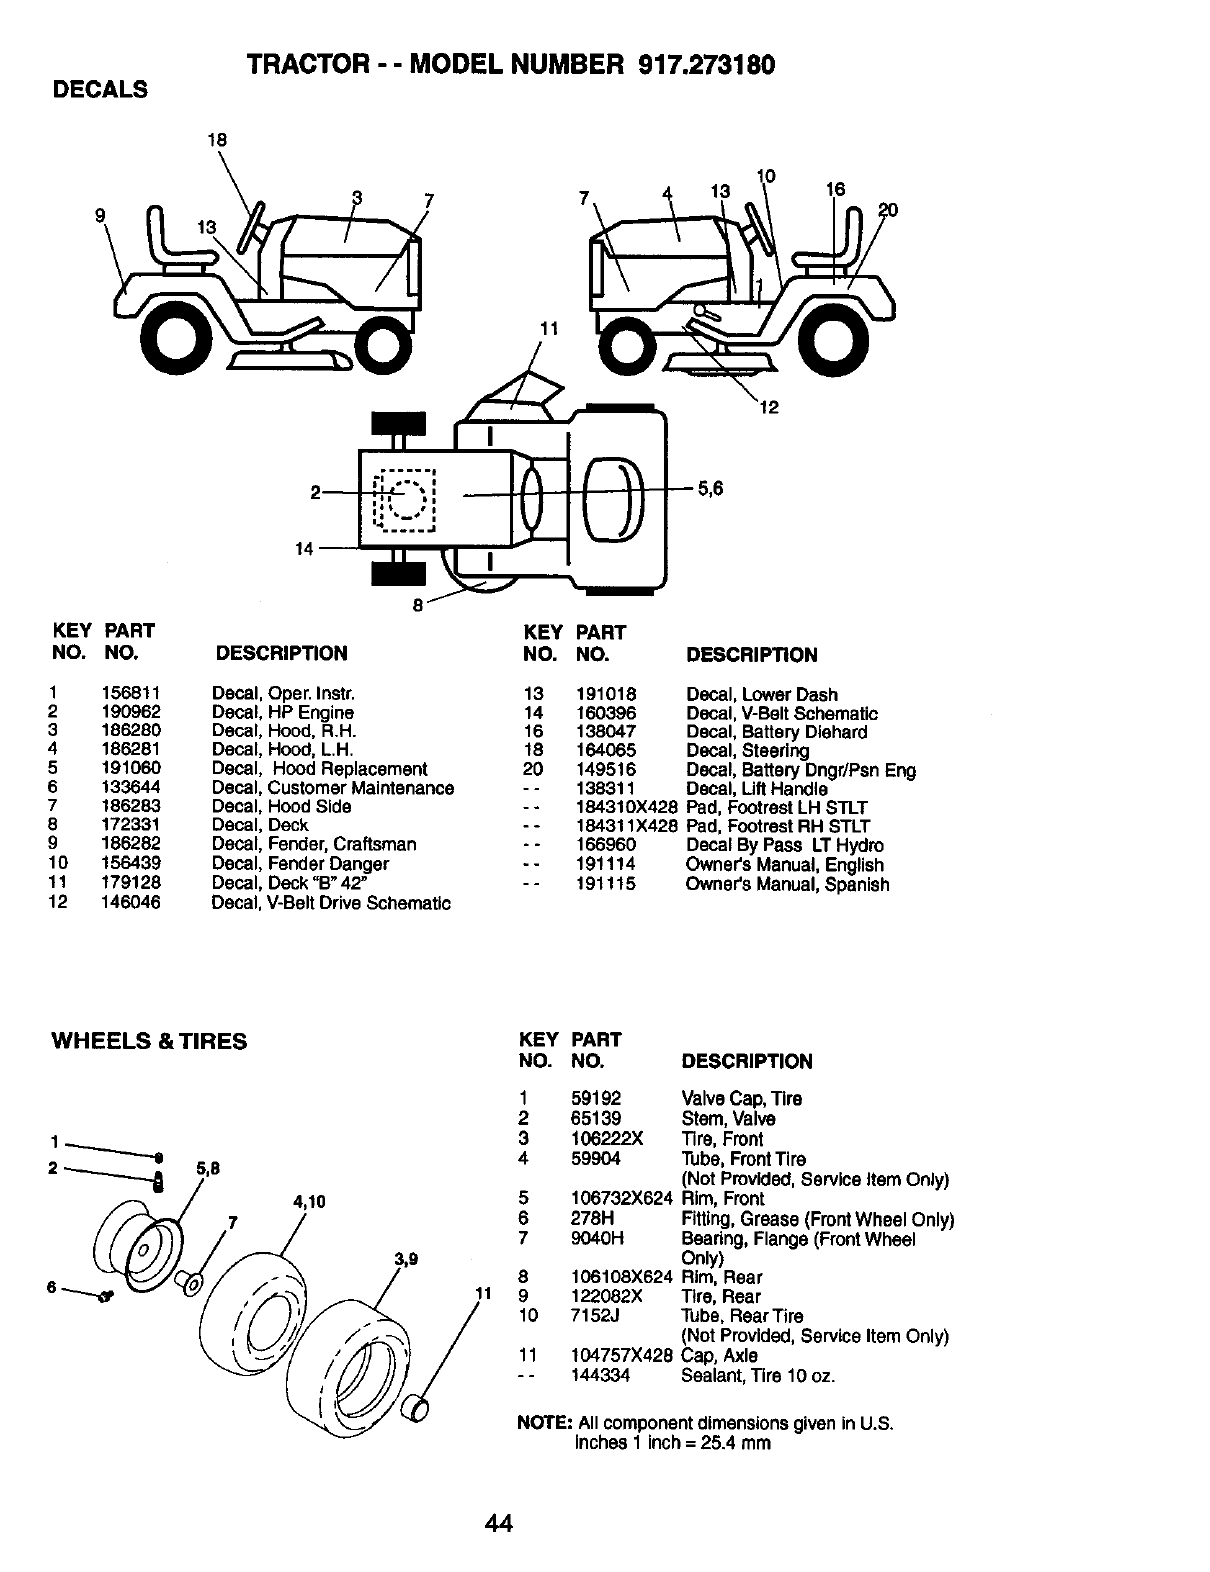 Page 44 of Craftsman Lawn Mower 917.273180 User Guide